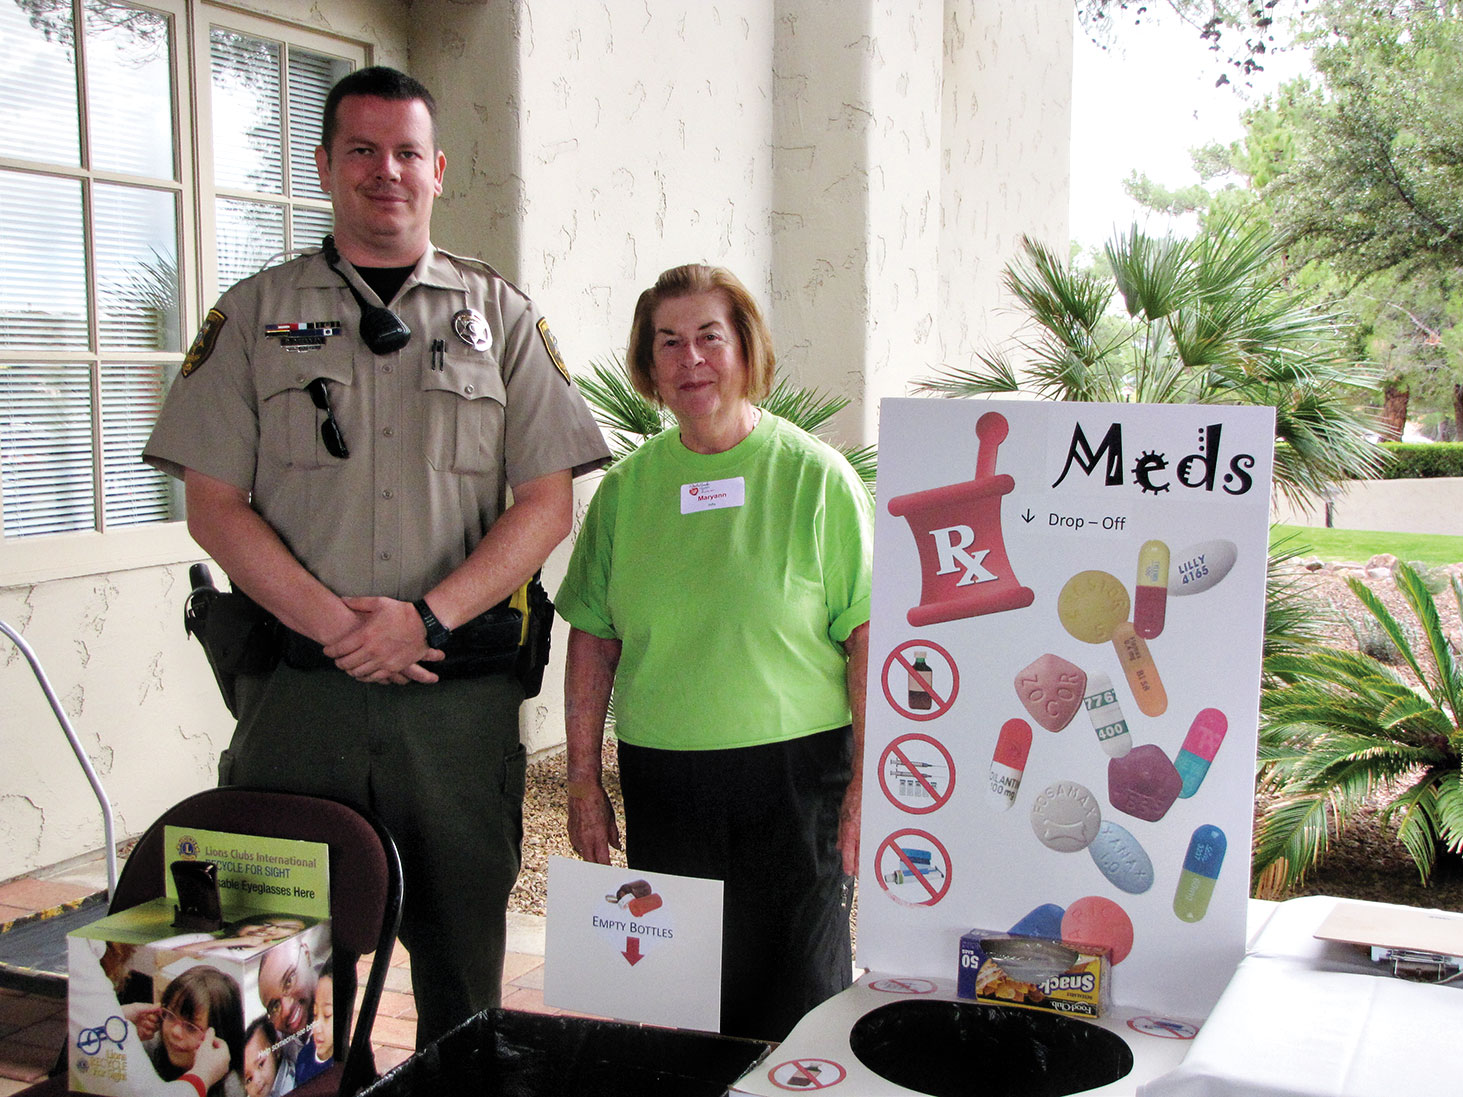 Bring expired meds and old eyeglasses for collection at the Health Fair.